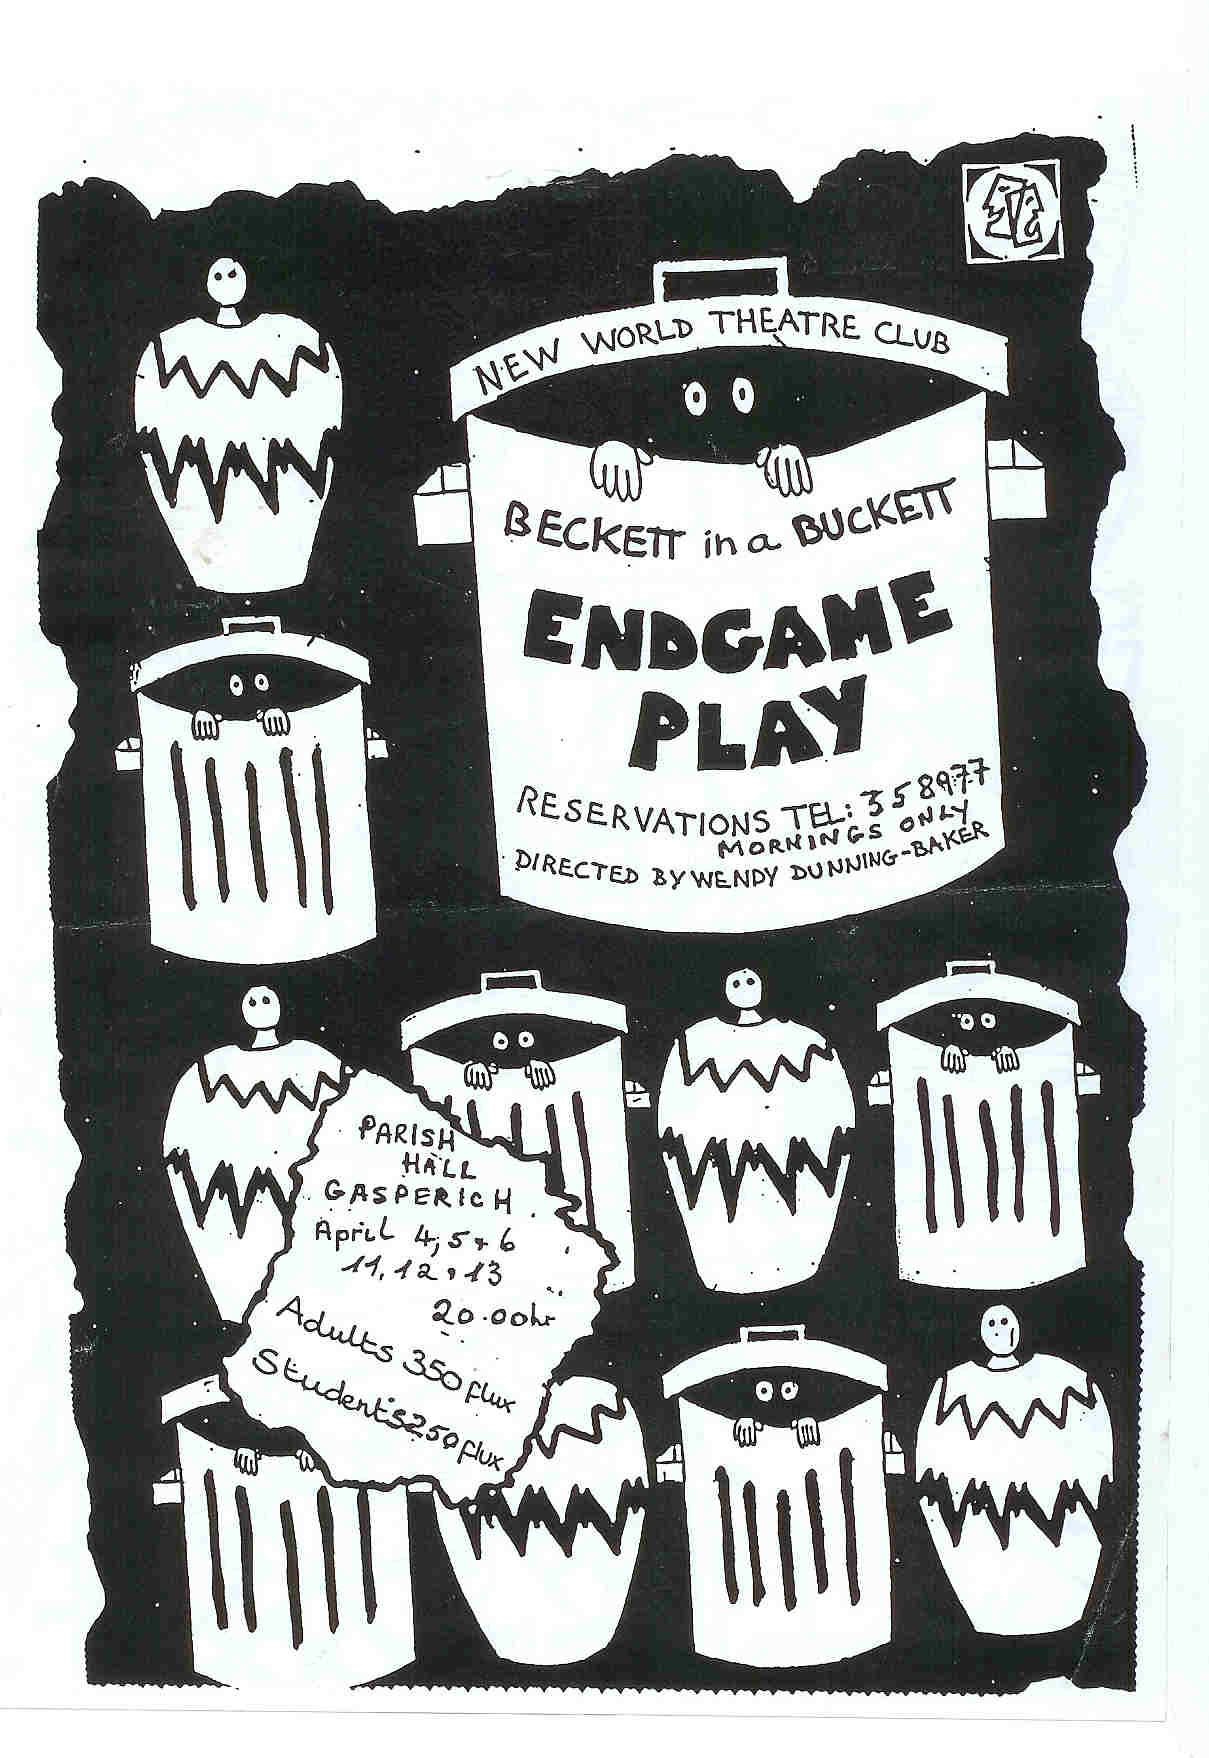 https://www.nwtc.lu/media/Show_Archives/2000_endgame_play/eplay_2000_flyer/ep00_flyer.jpg